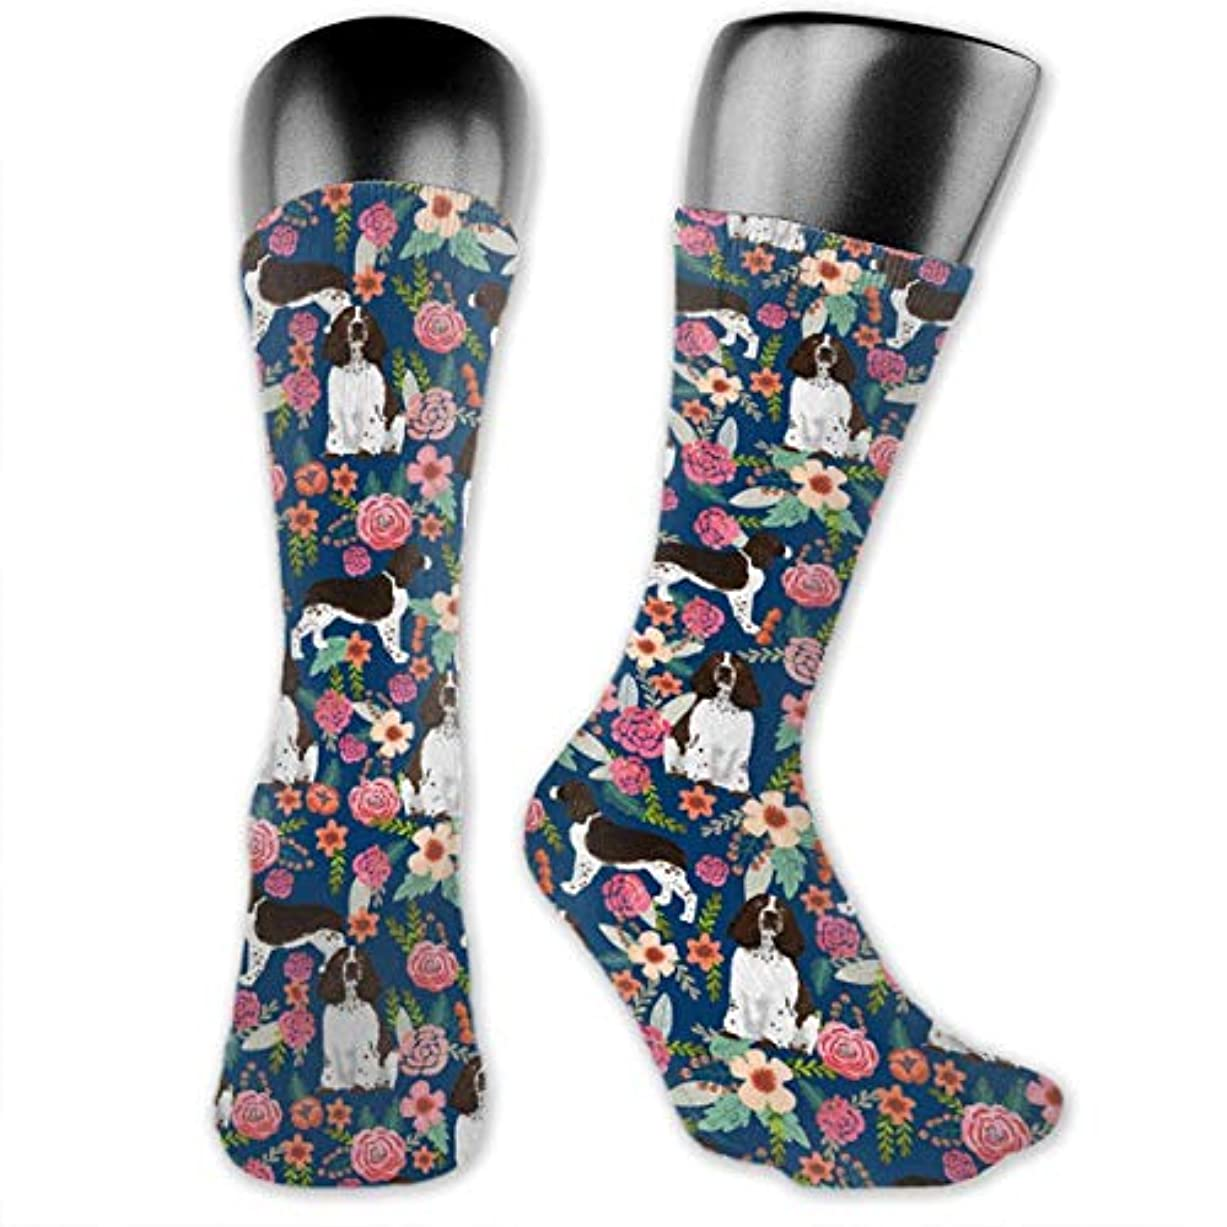 慈善覚醒整然としたMKLOS 通気性 圧縮ソックス Breathable Extra Long Cotton Thigh High Dog Bones Red Socks Over Exotic Psychedelic Print Compression...